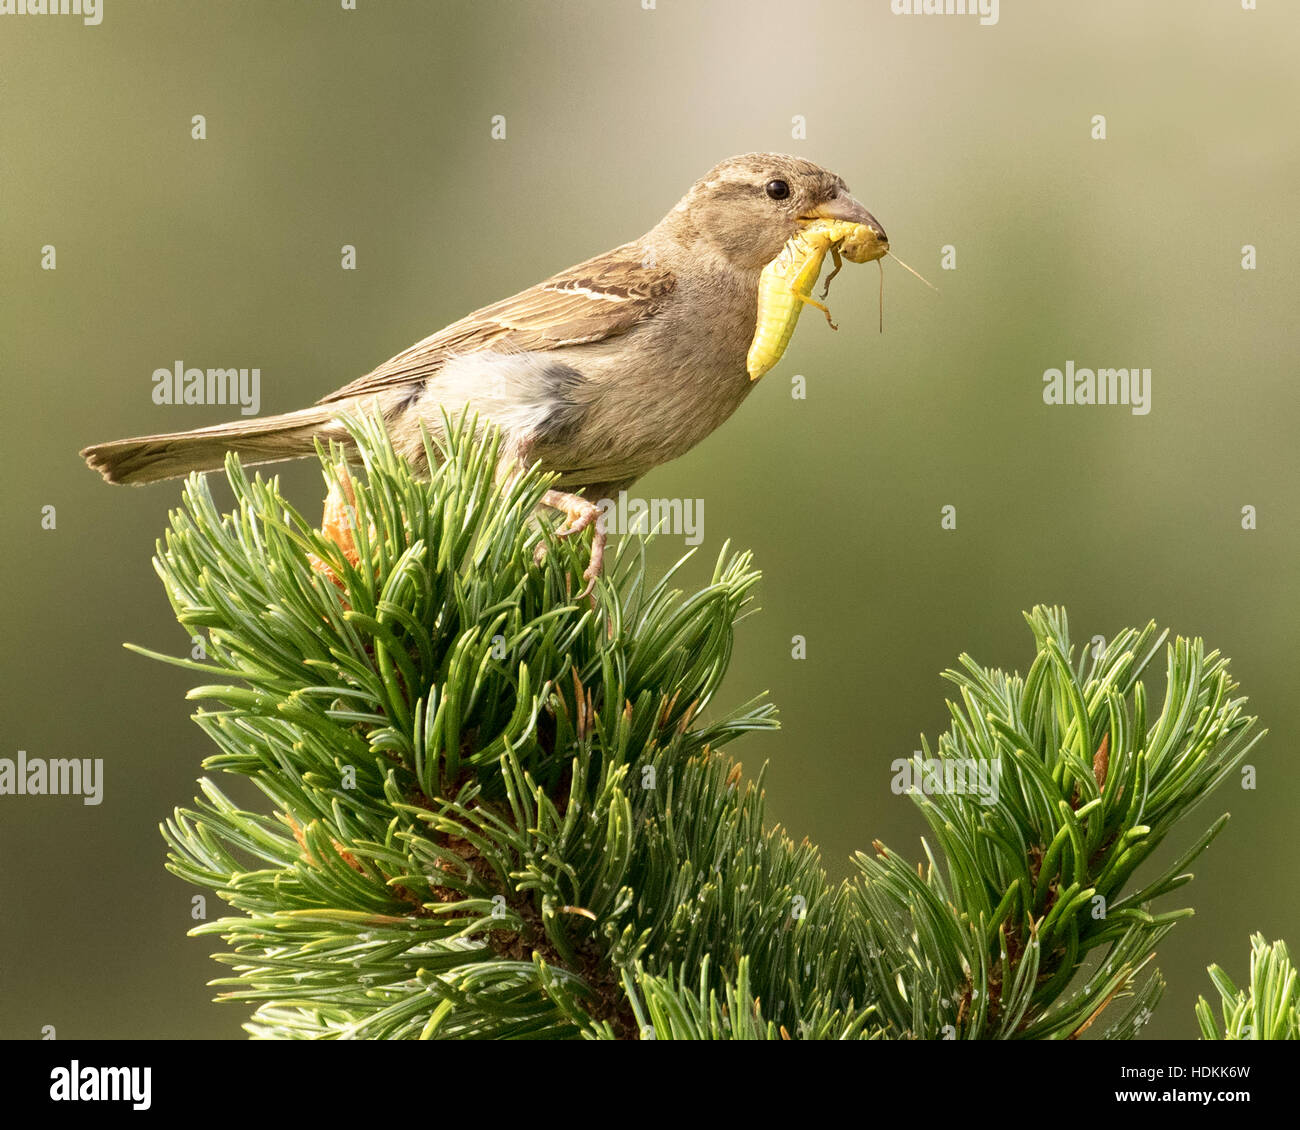 House finch with a grasshopper in its mouth perched on the branch of a pine tree. - Stock Image